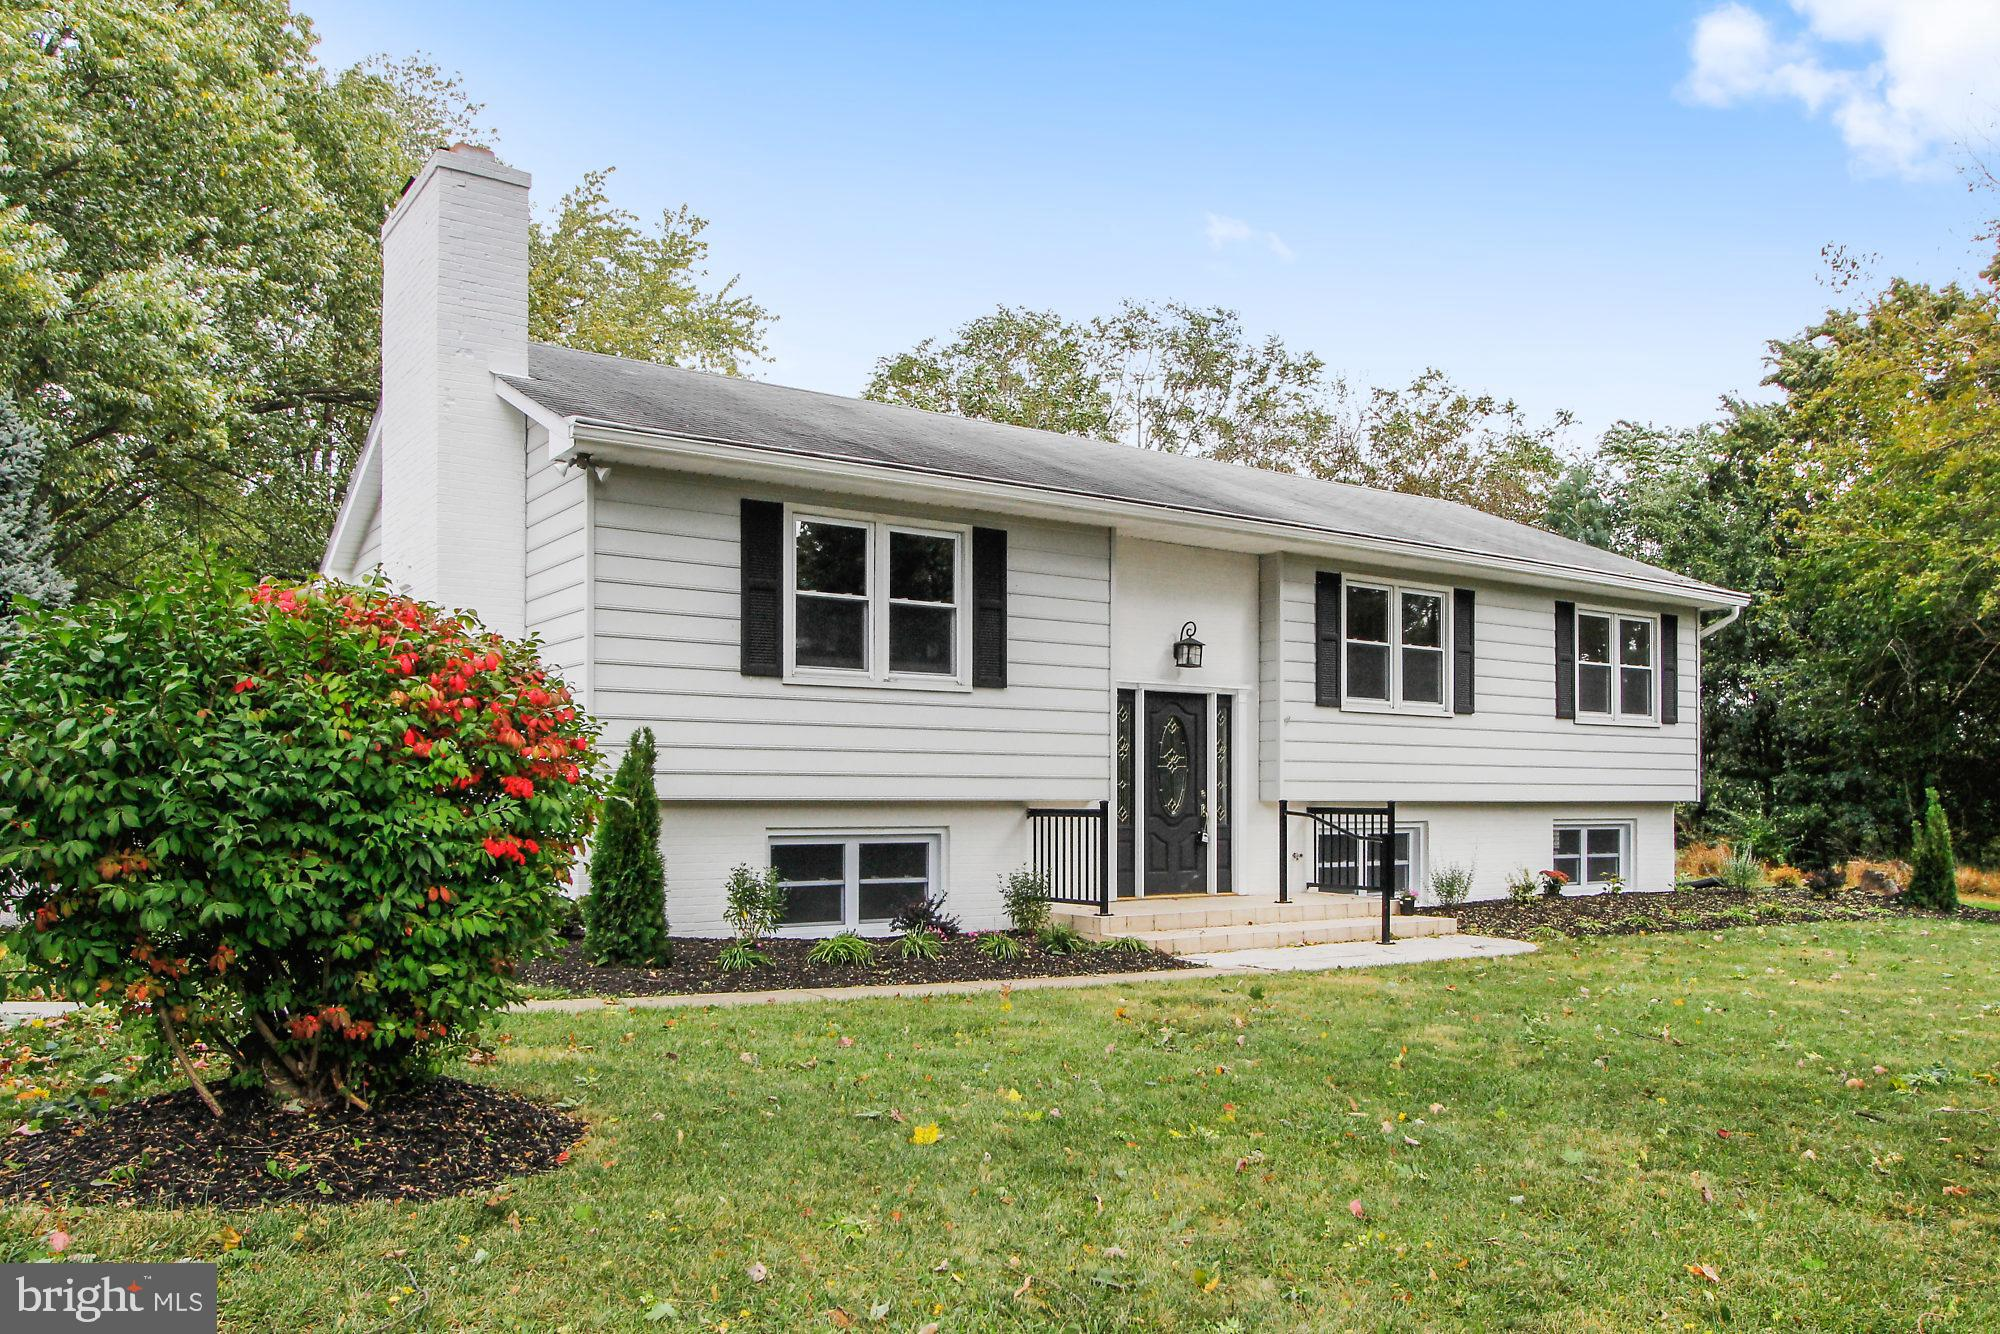 Renovated single family home in Carroll County with the most desirable open concept floor plan. The